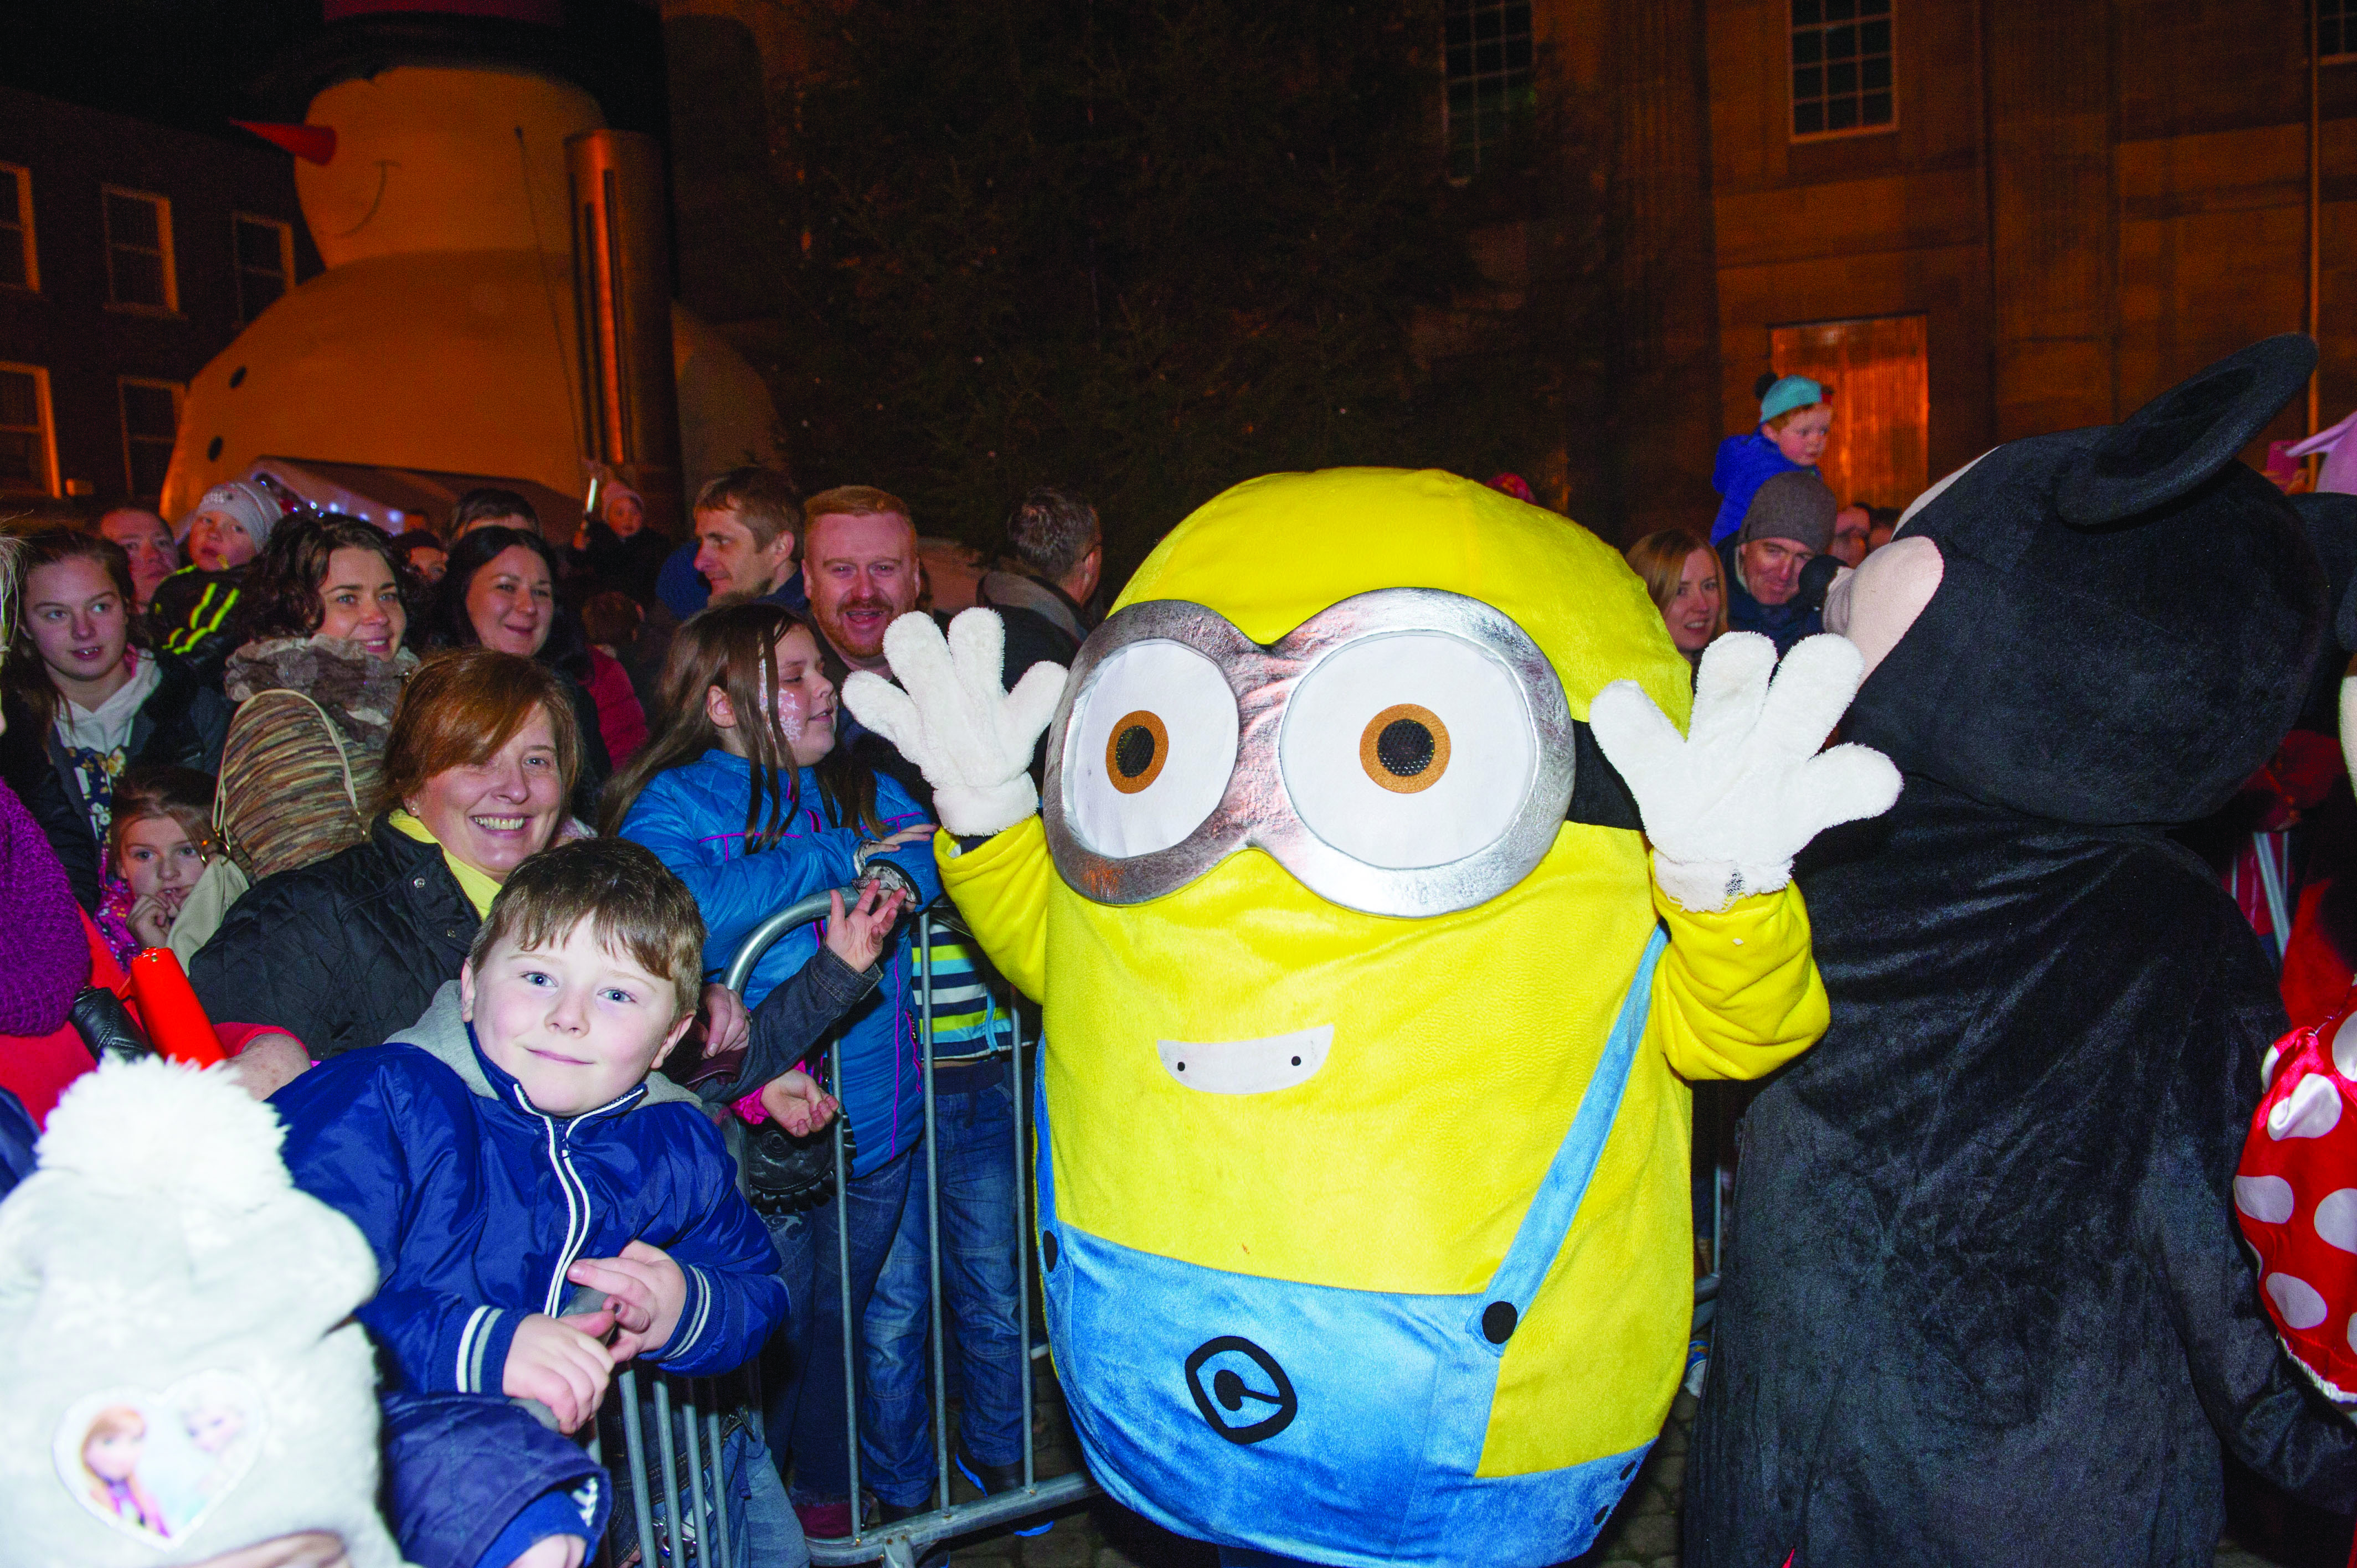 A Minion at the Monaghan Town Christmas Lights Switch-On. ©Rory Geary/The Northern Standard